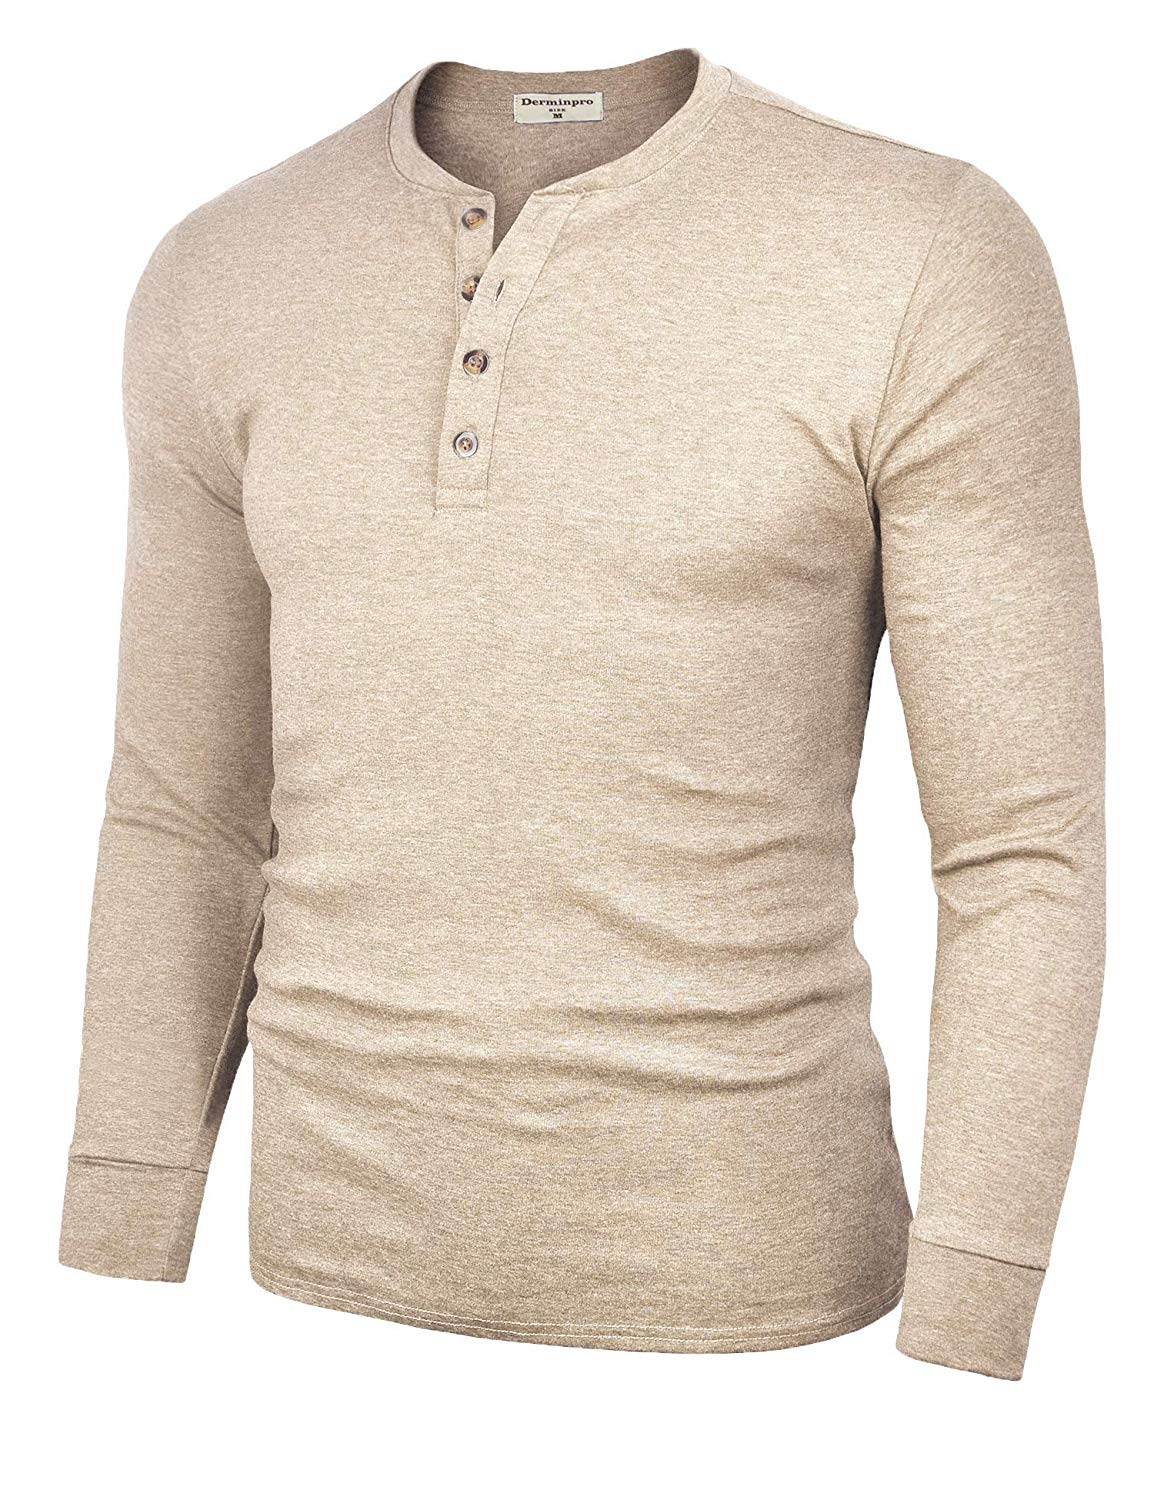 M220100 Men's Cotton Casual Long Sleeve Lightweight Basic Thermal T Shirts